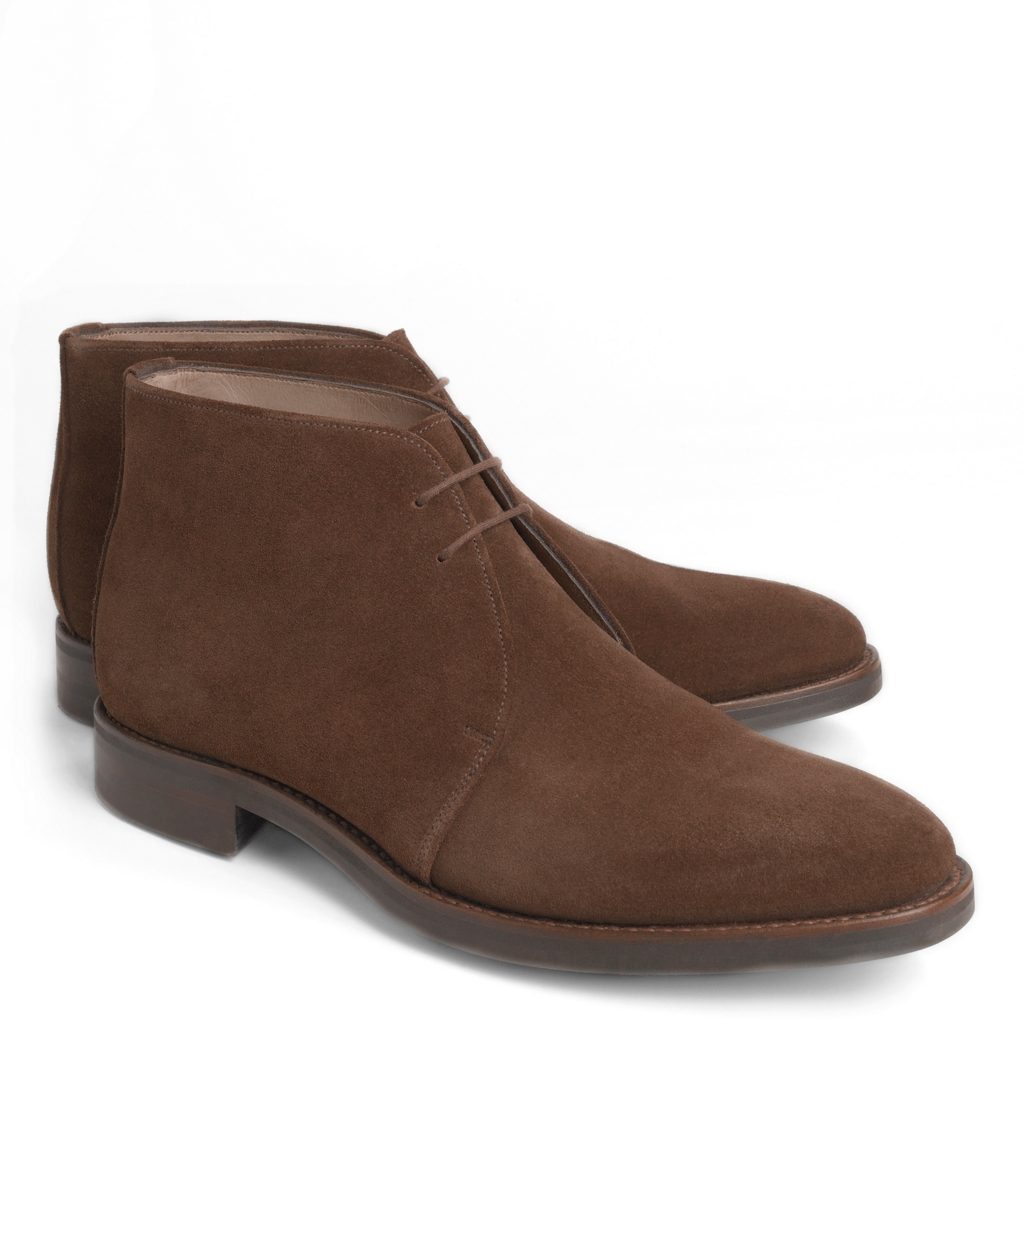 brothers peal co brown suede chukka boots in brown